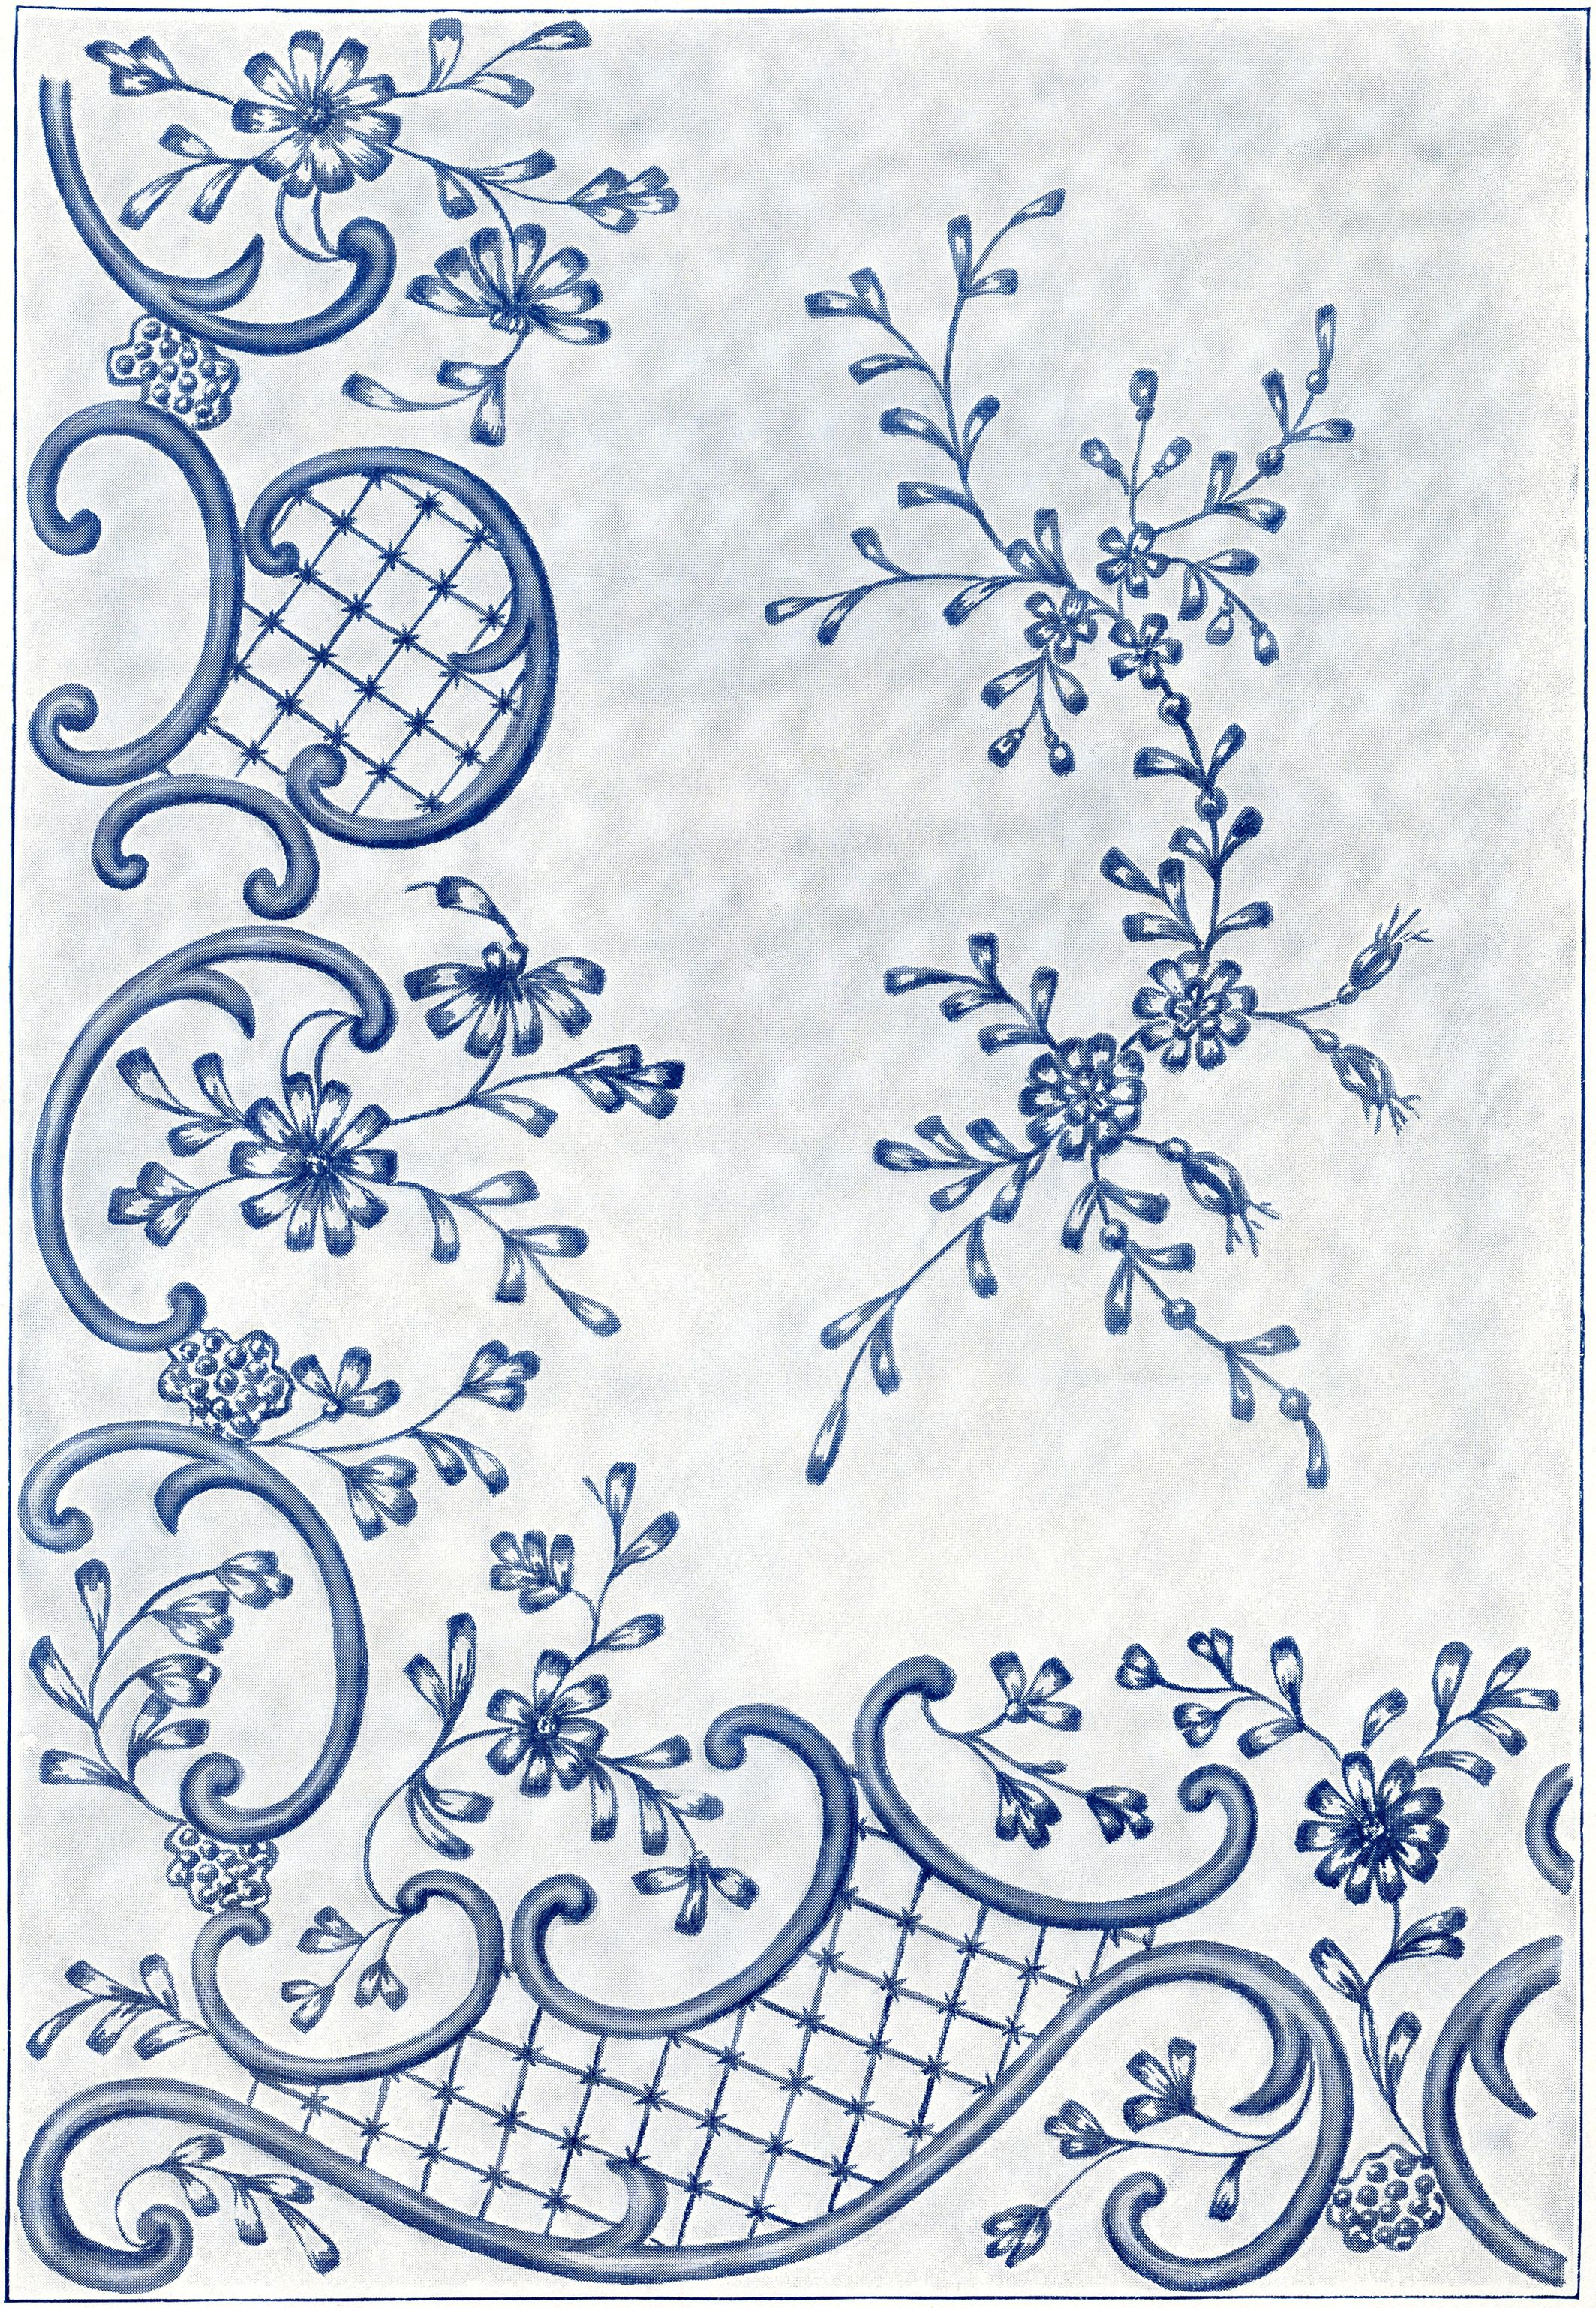 Victorian Embroidery Fancy Stitches Design of Swirls and Flowers ...